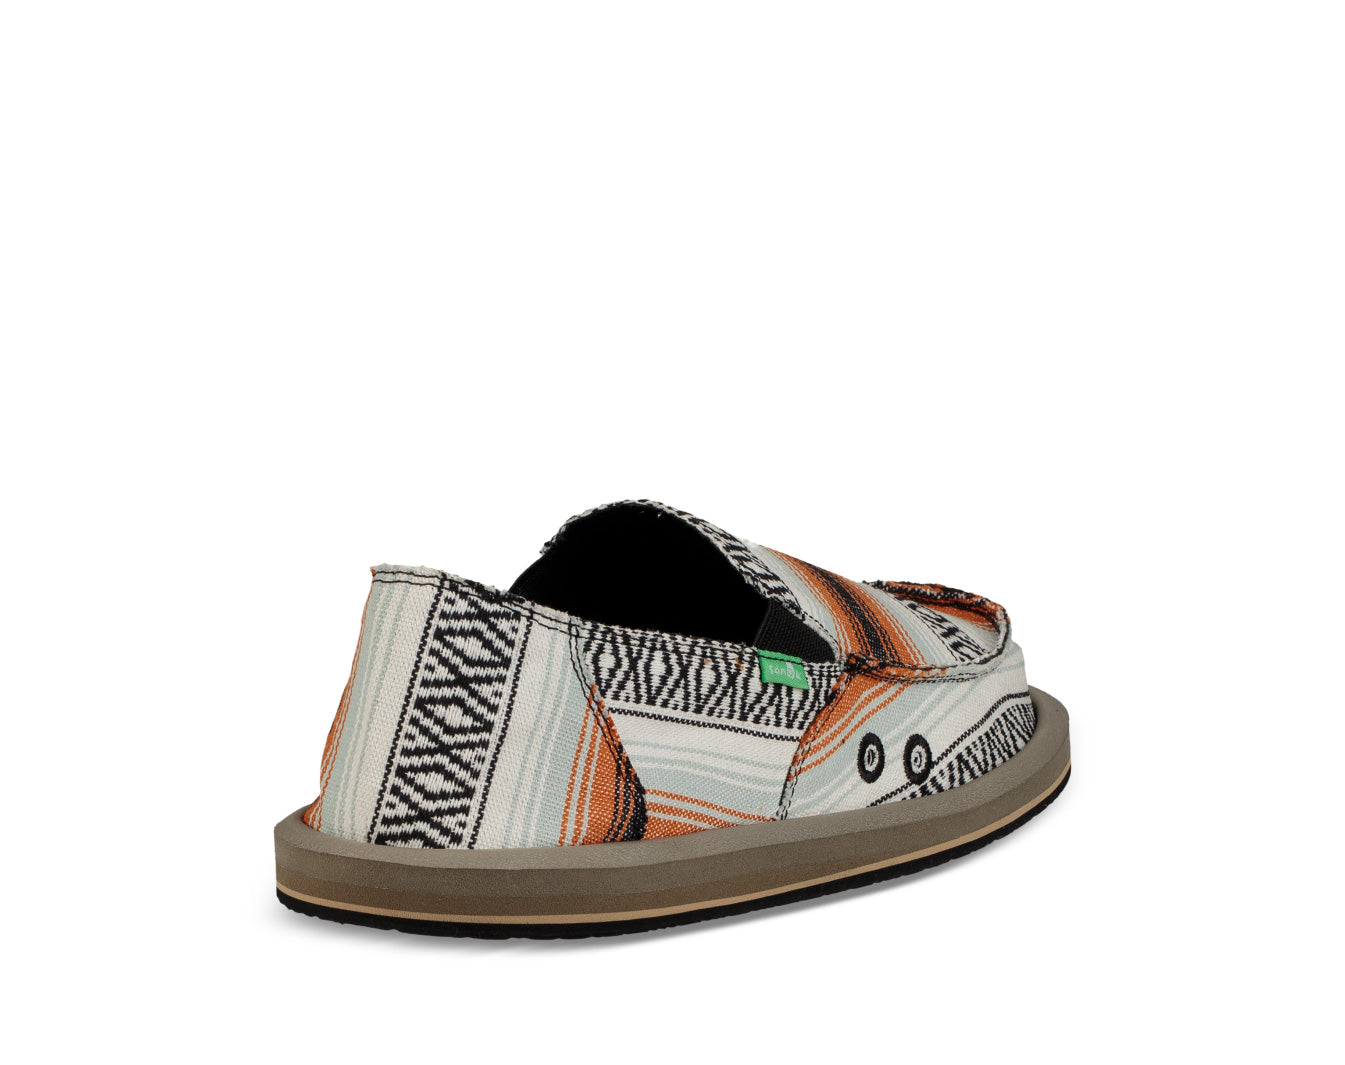 Sanuk Donny Funk Slip On Surfer Shoe - 88 Gear